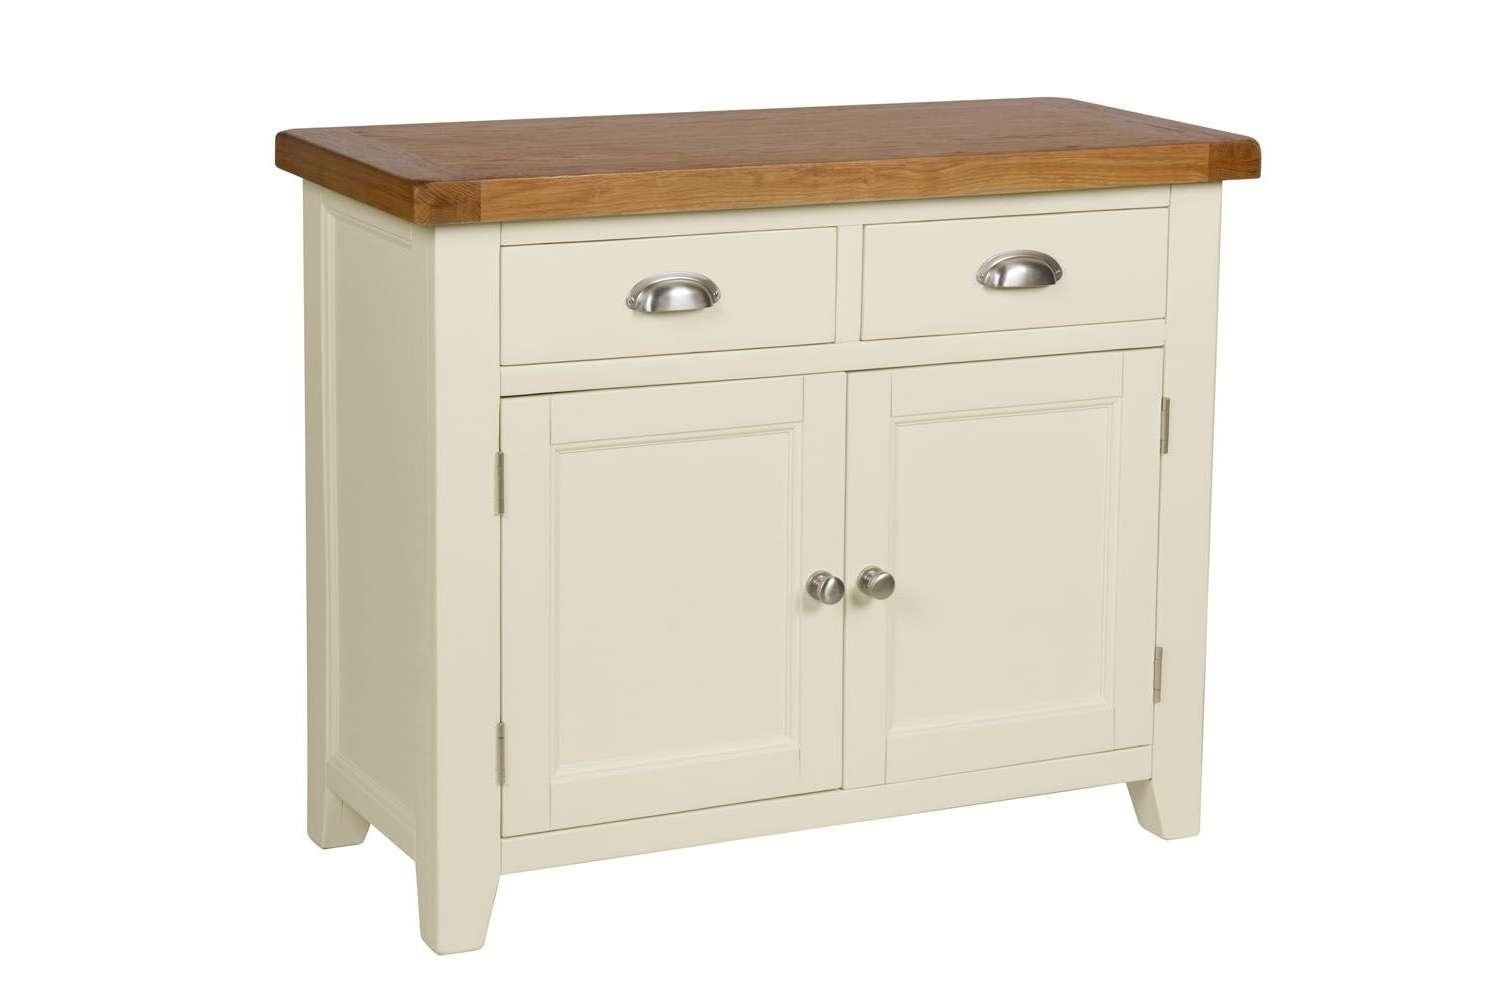 Country Cottage 100cm Cream Painted Oak Sideboard Regarding Painted Sideboards (View 7 of 20)